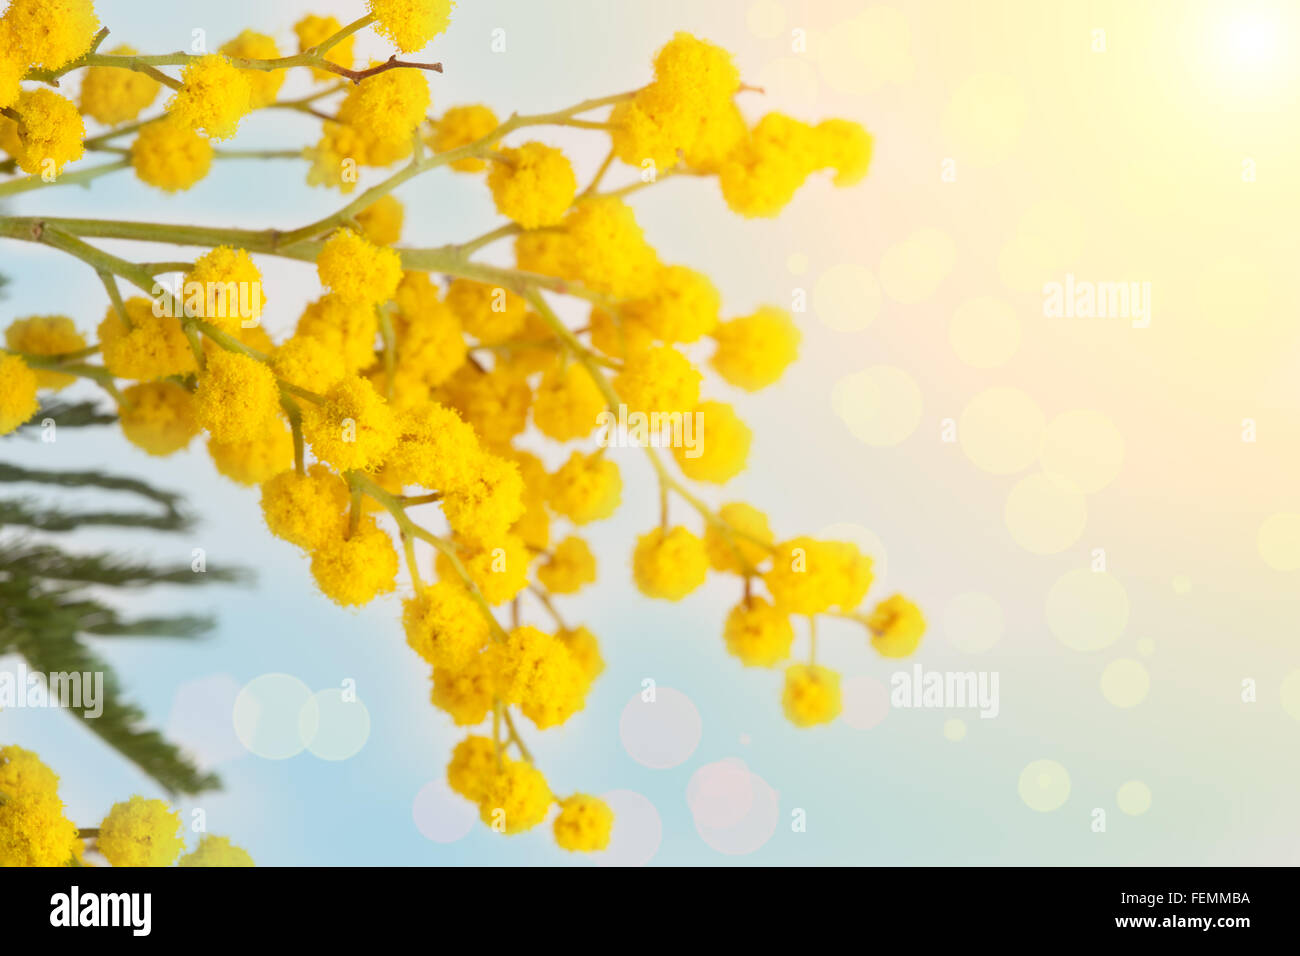 Yellow Mimosa Flower Immagini   Yellow Mimosa Flower Fotos Stock - Alamy a4a03c2ec17f